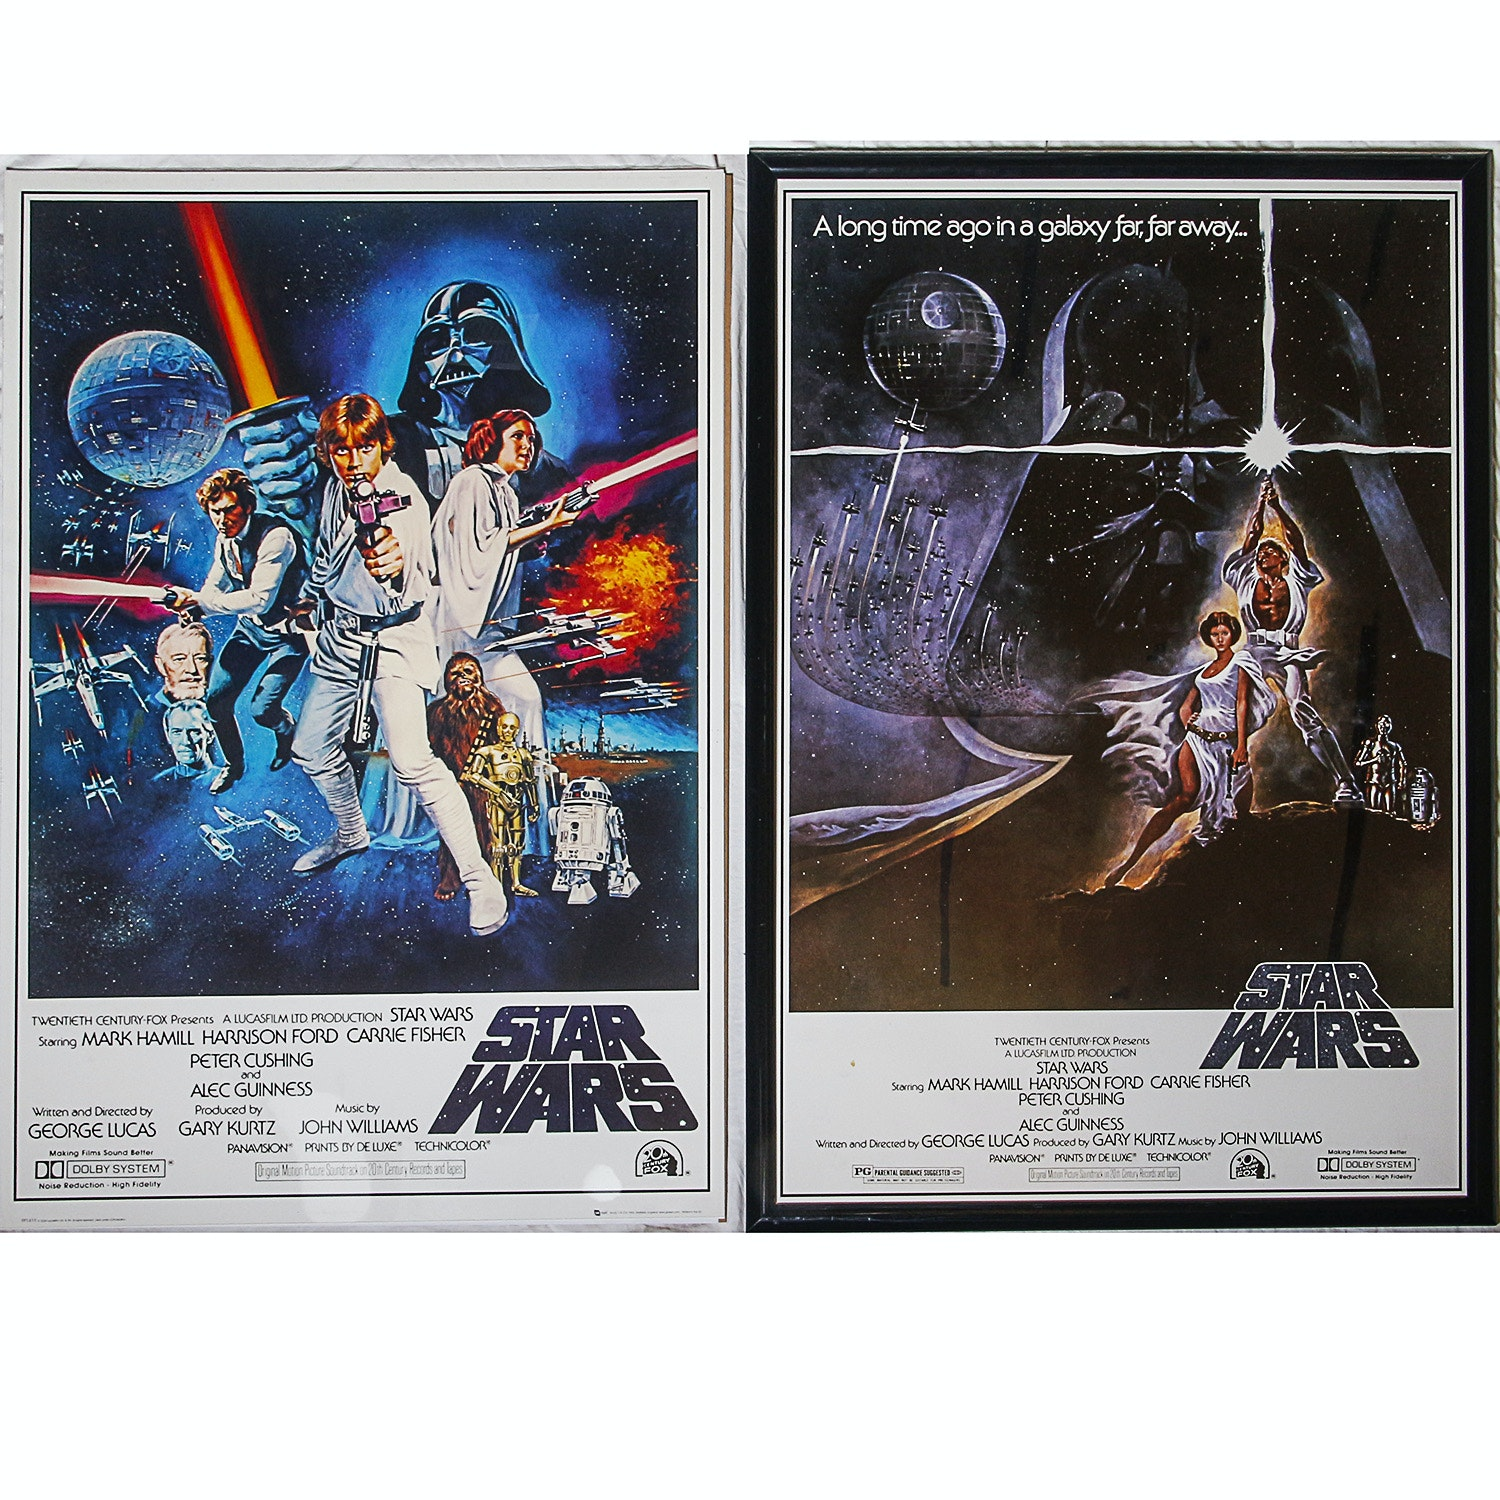 """Star Wars: Episode IV – A New Hope"" Reproduction Posters"